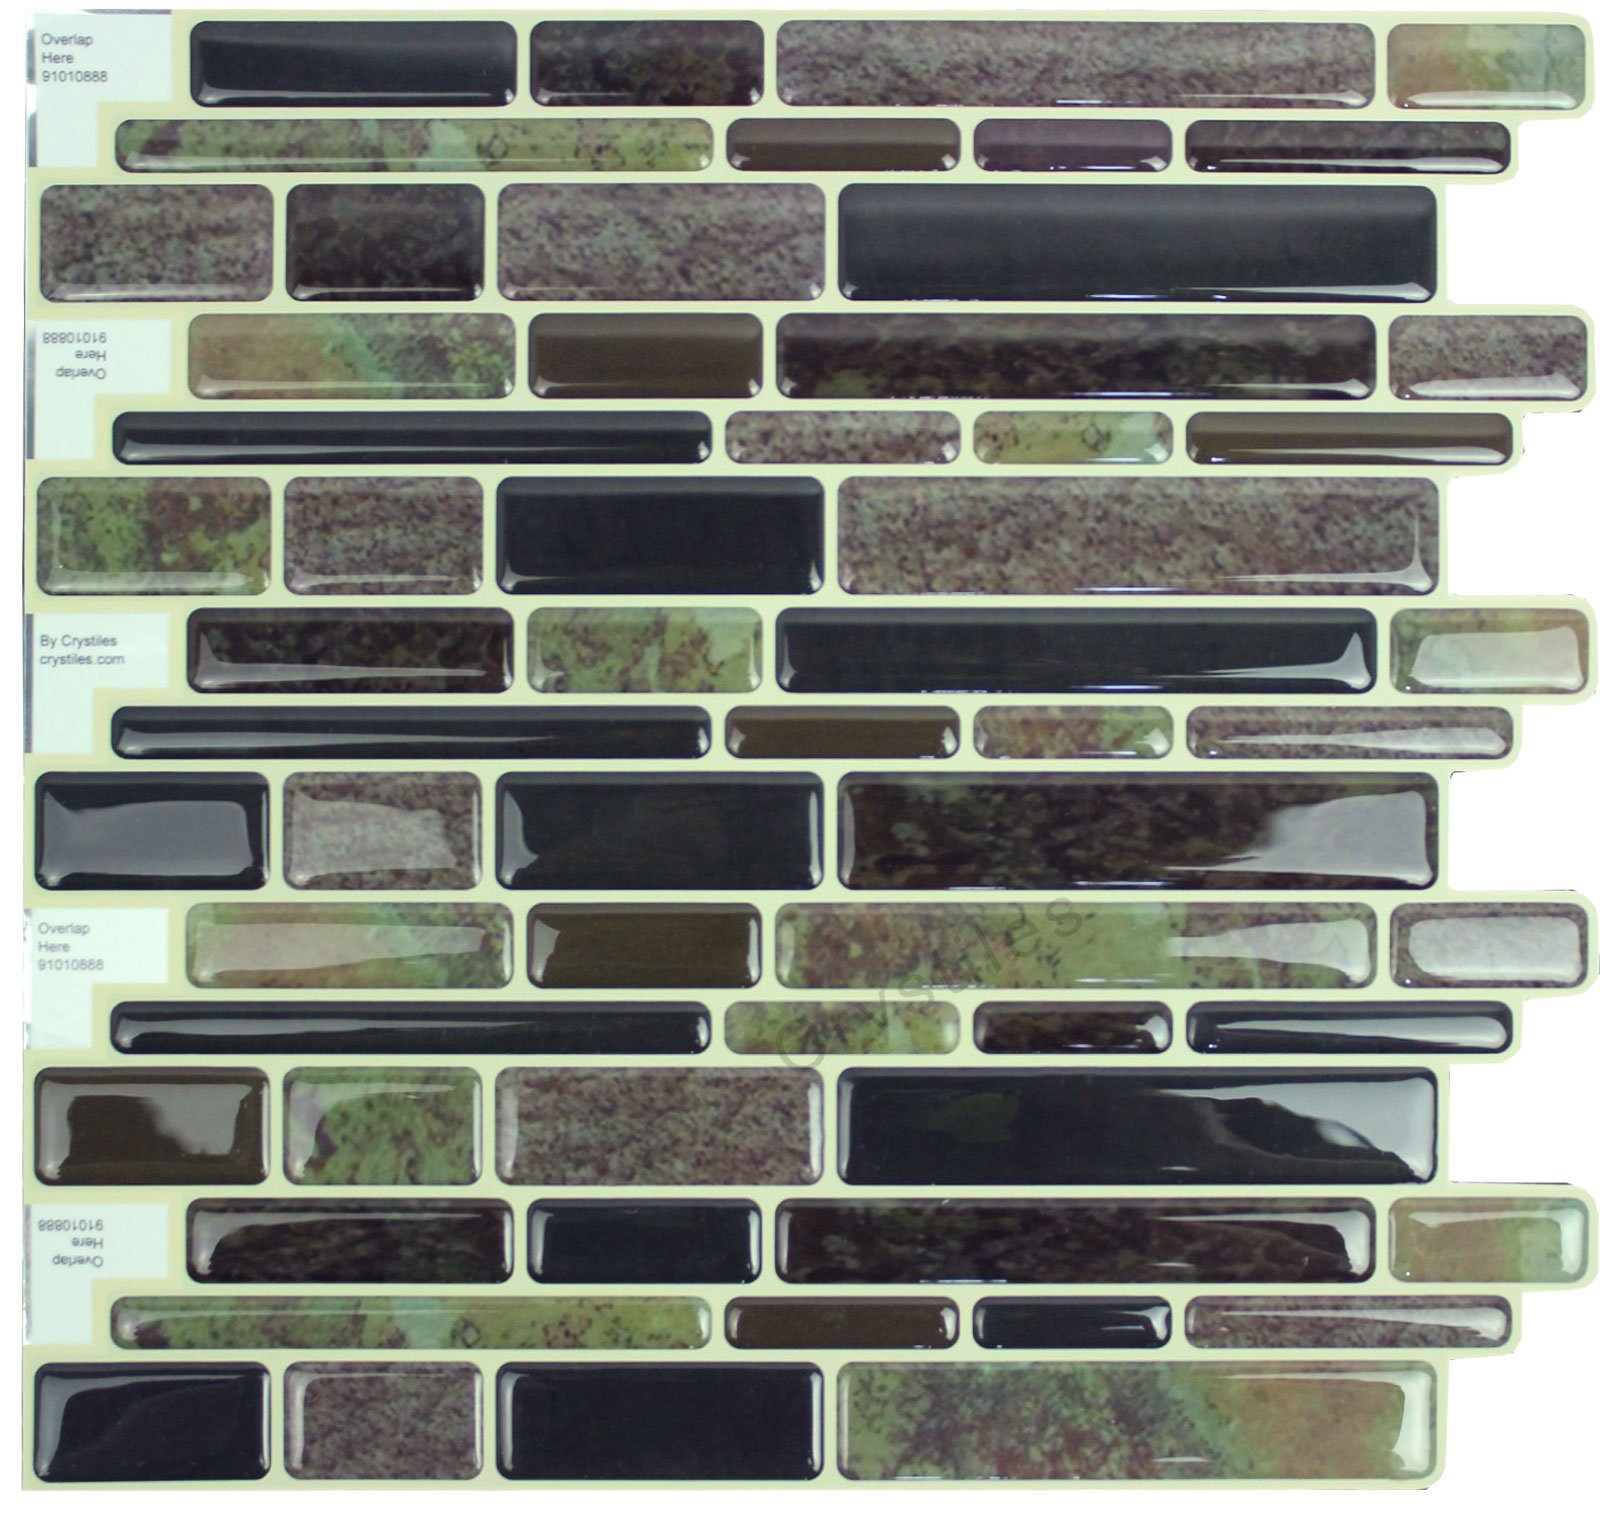 Crystiles Peel and Stick Vinyl Wall Stick-on Tile Backsplash for Kitchen and Bathroom Décor Project, Item# 91010888, Multi-Color Marble Style, 10 in X 10 in, 6-Sheet Pack